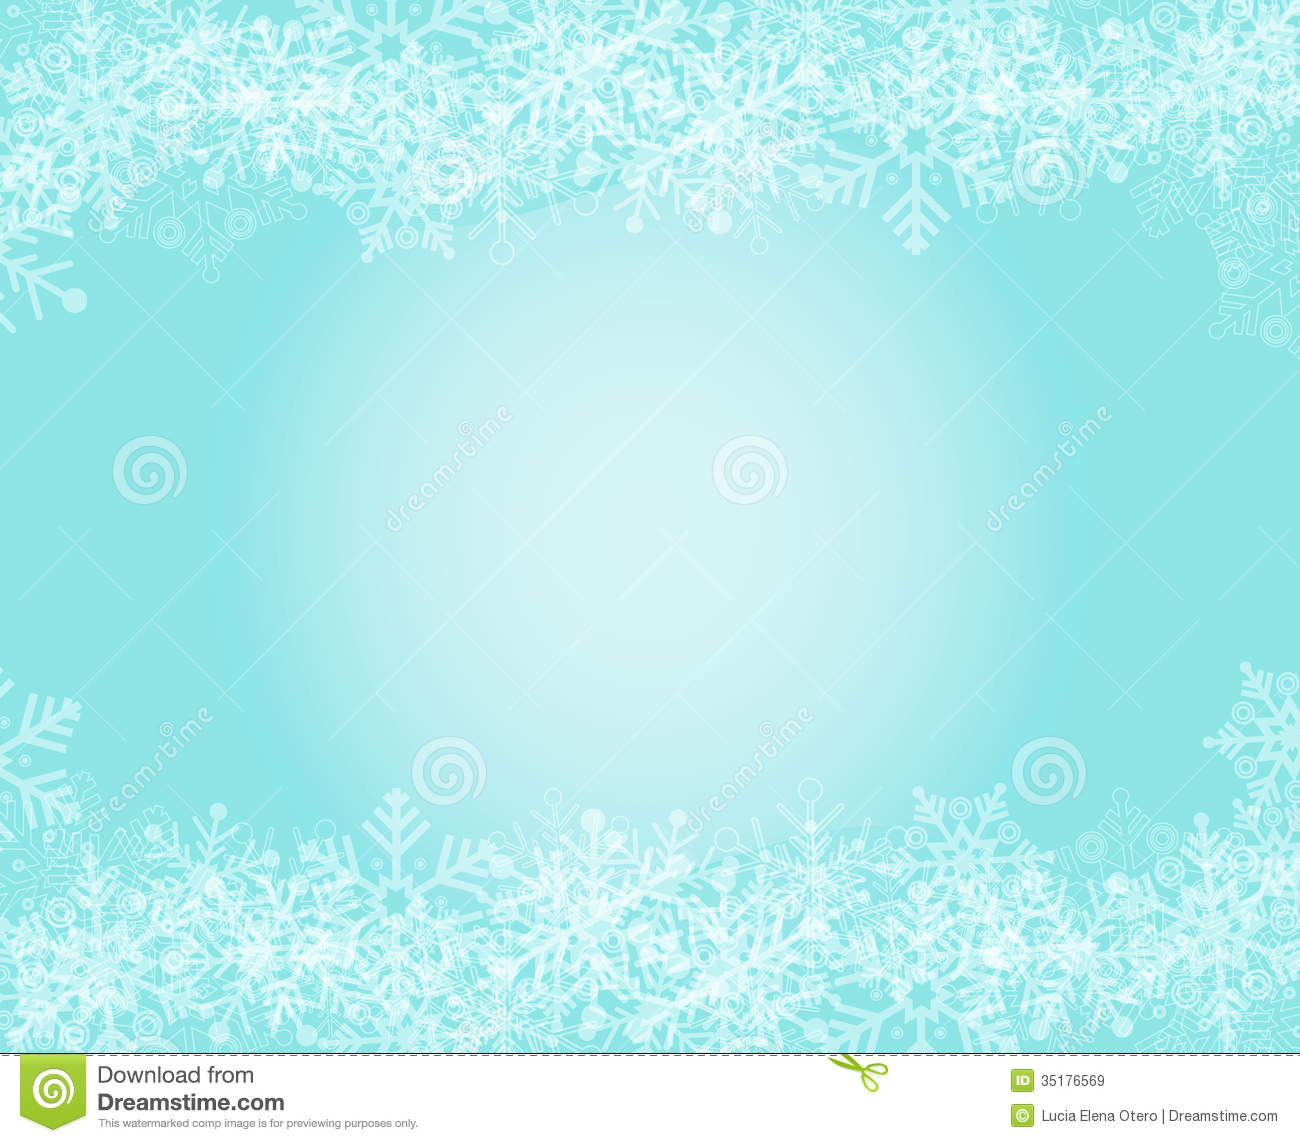 Wallpaper Border Falling Off Snowflakes Background Stock Vector Image Of Christmas